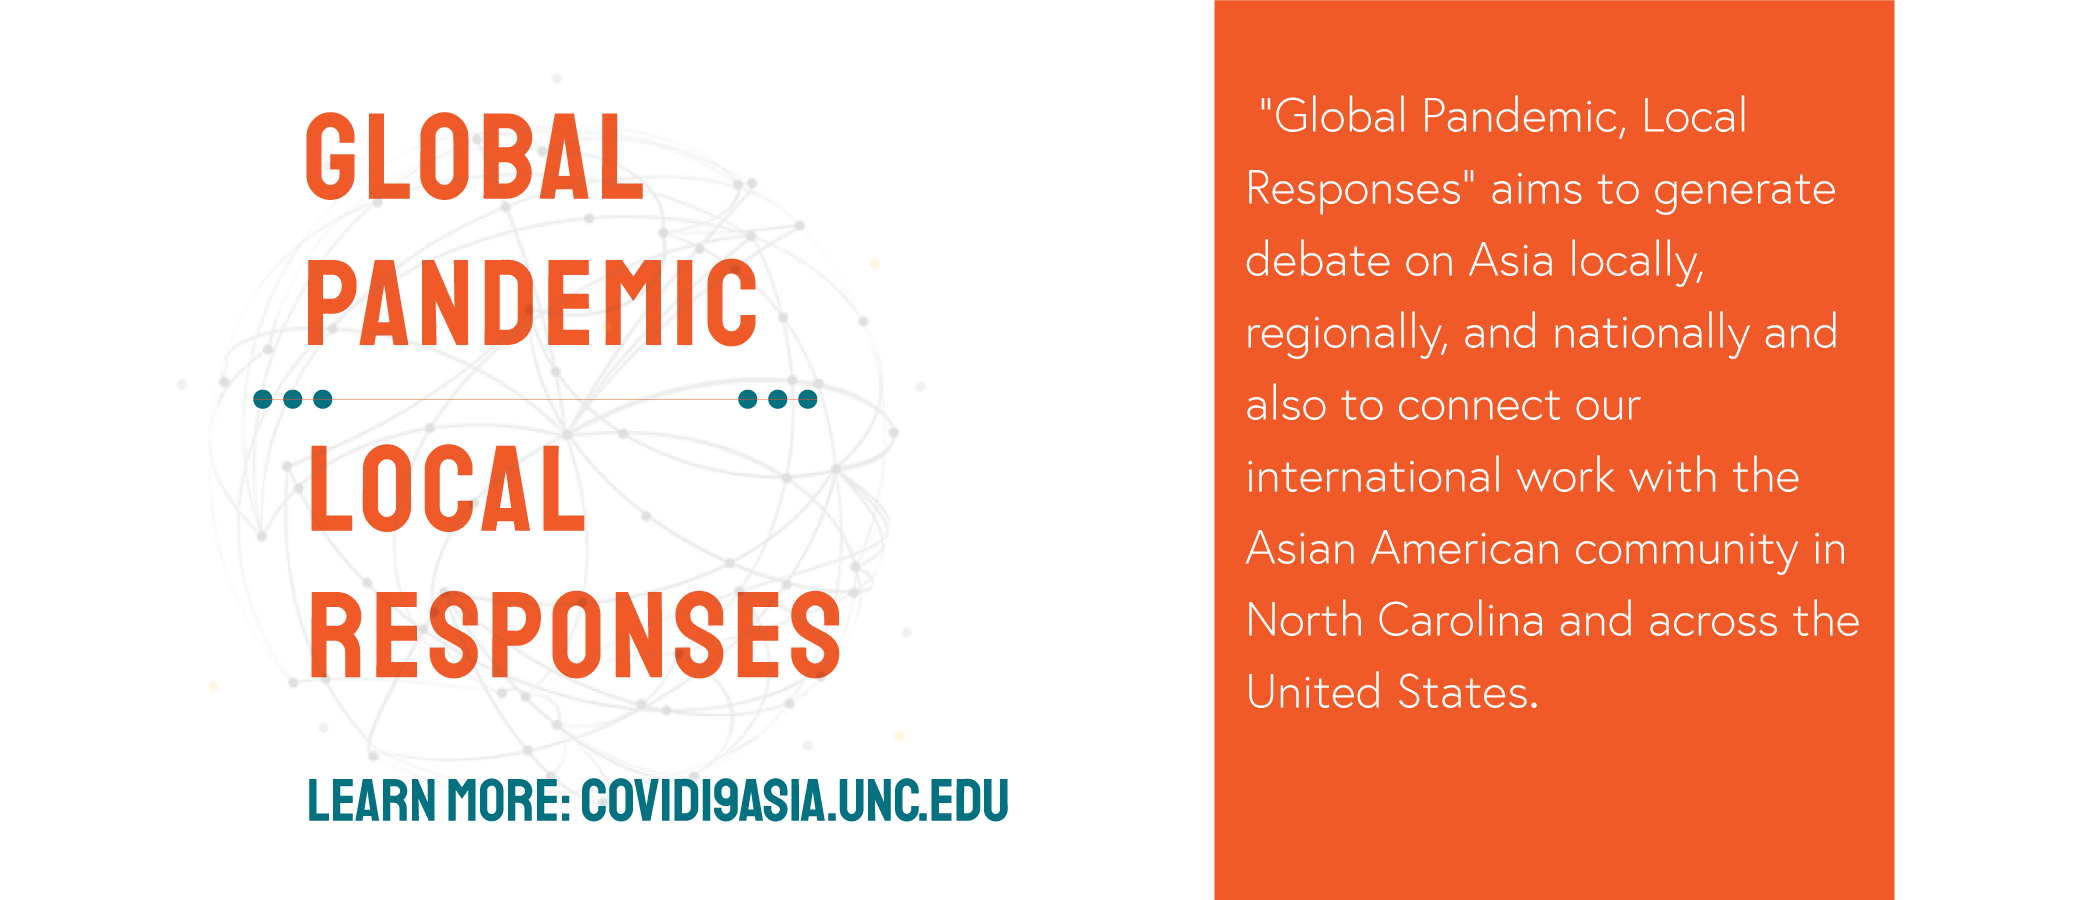 Global Pandemic/Local Responses: Learn more at Covid19asia.unc.edu